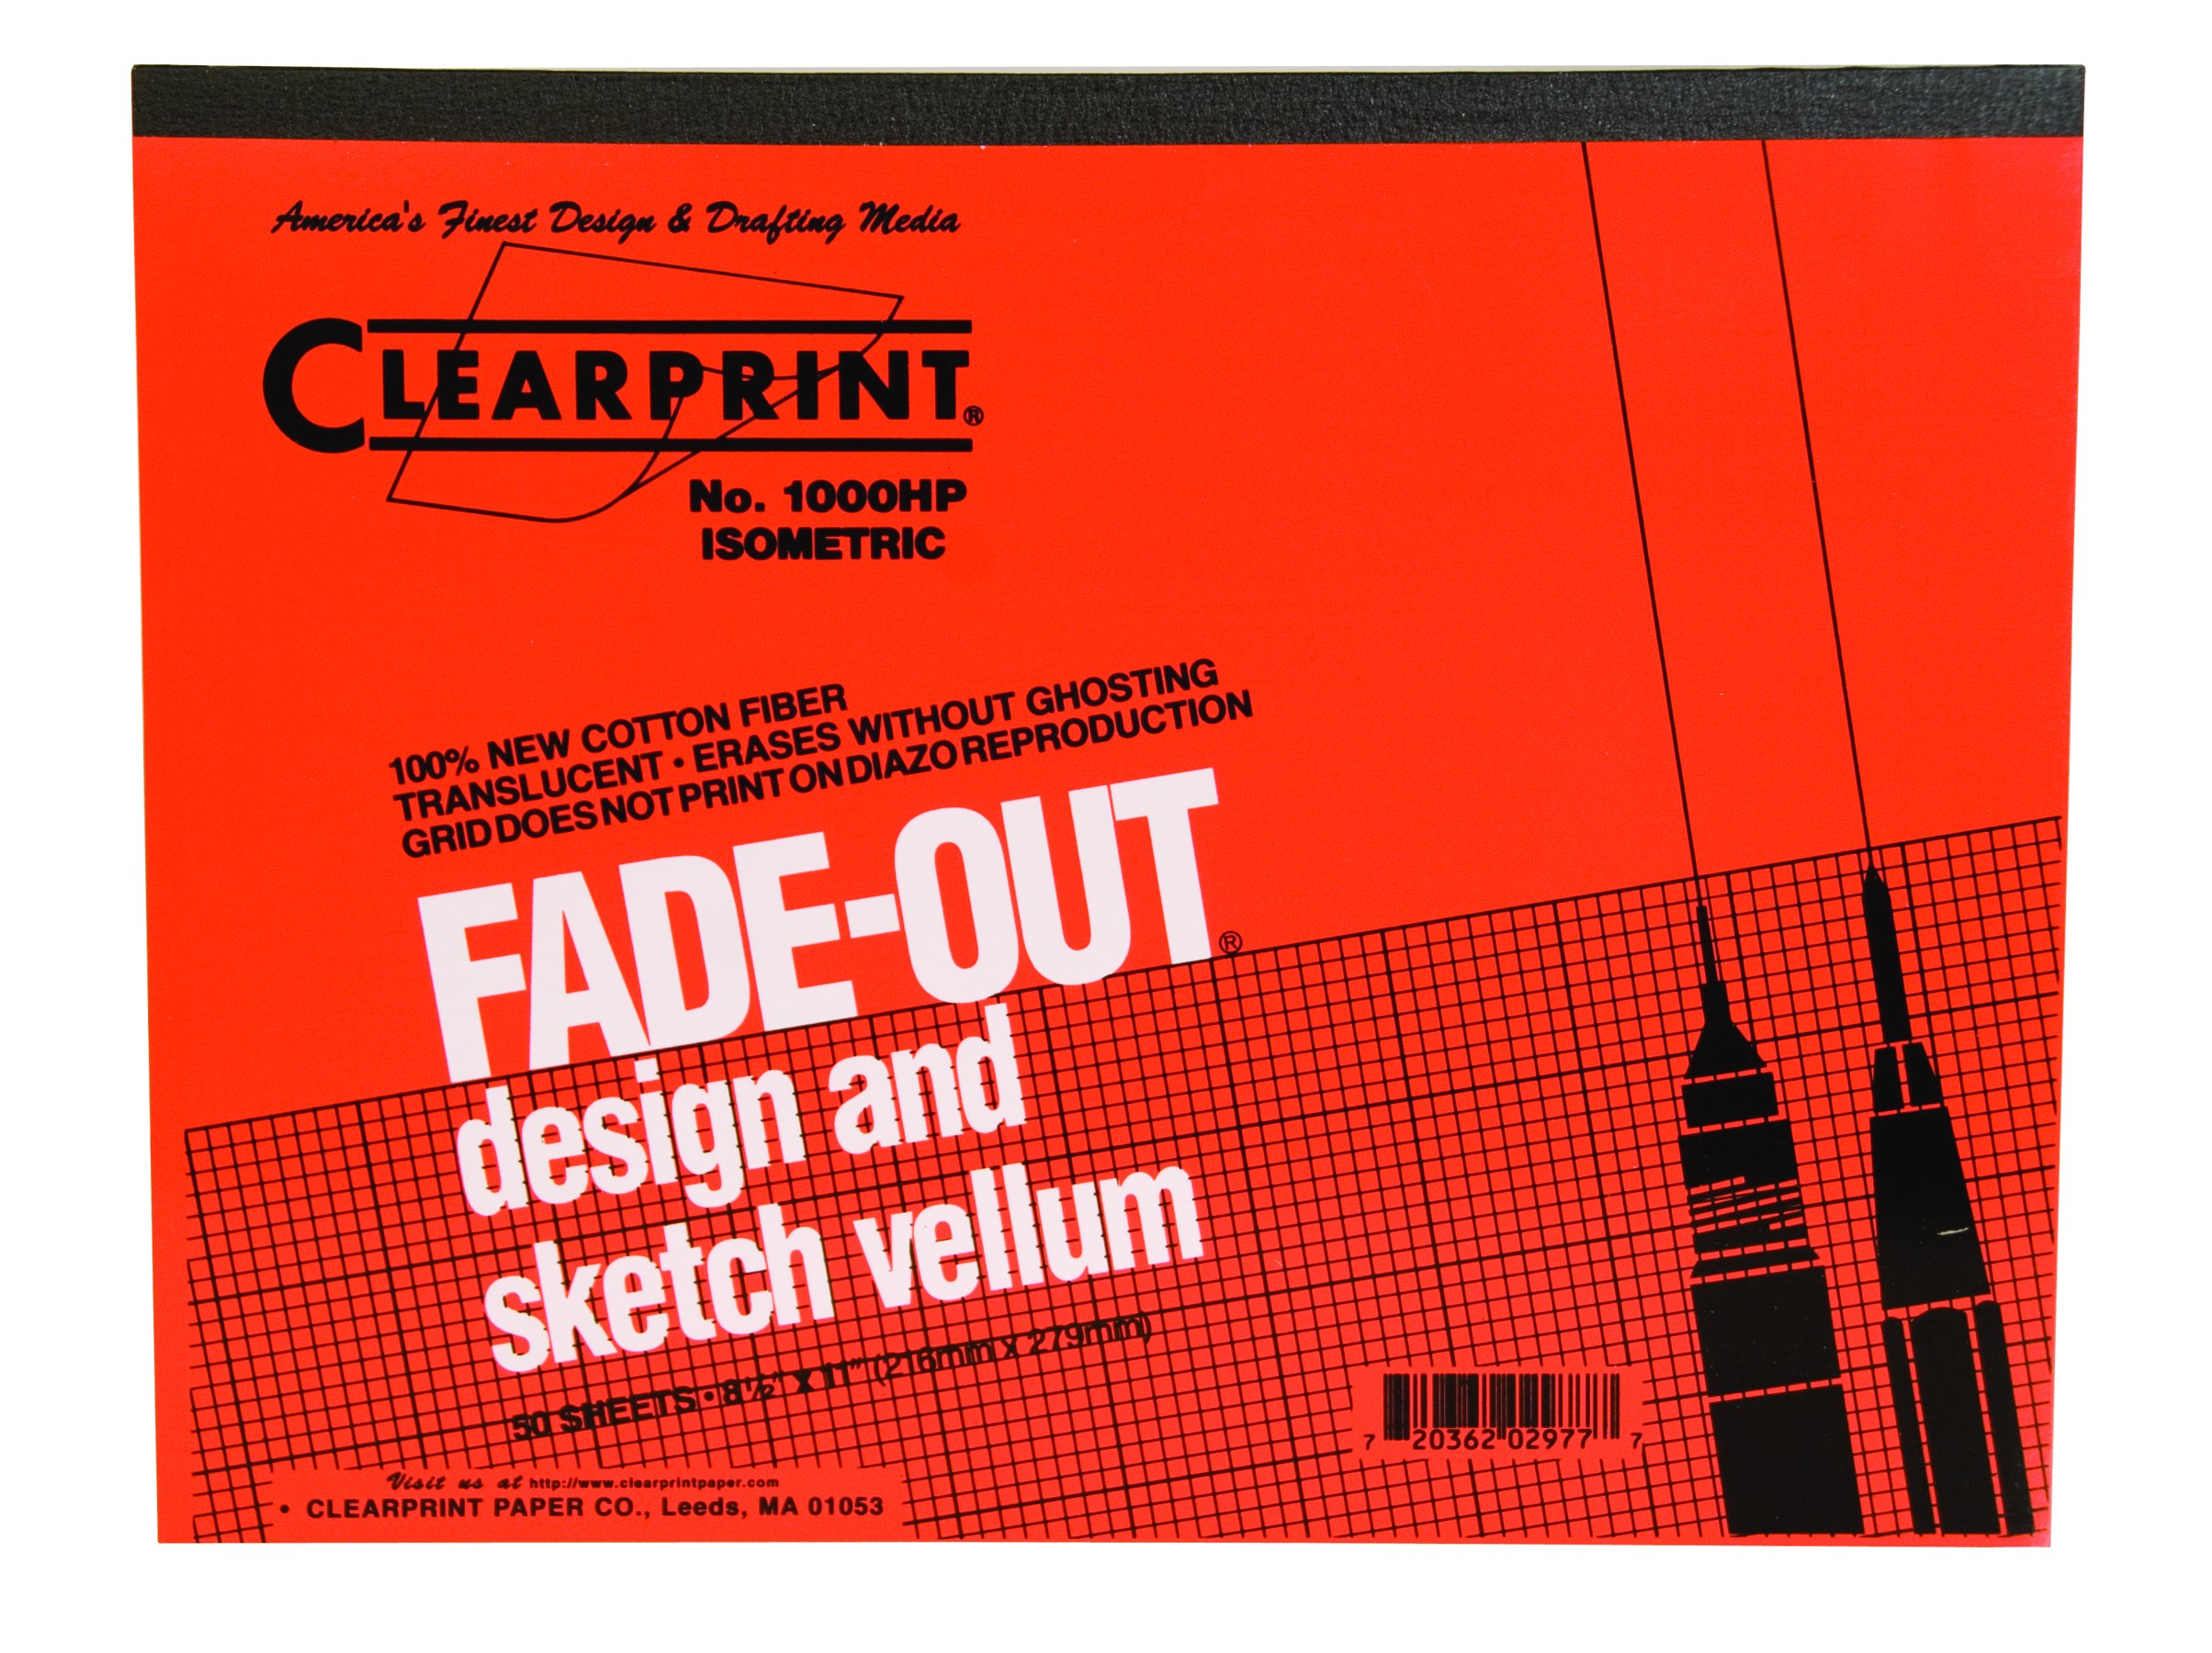 Clearprint 1000H Design Vellum Pad with Printed Fade-Out 30-Degree Isometric Grid, 16 lb, 100% Cotton, 8-1/2 x 11 Inches, 50 Sheets, 1 Each (10005410) by Clearprint